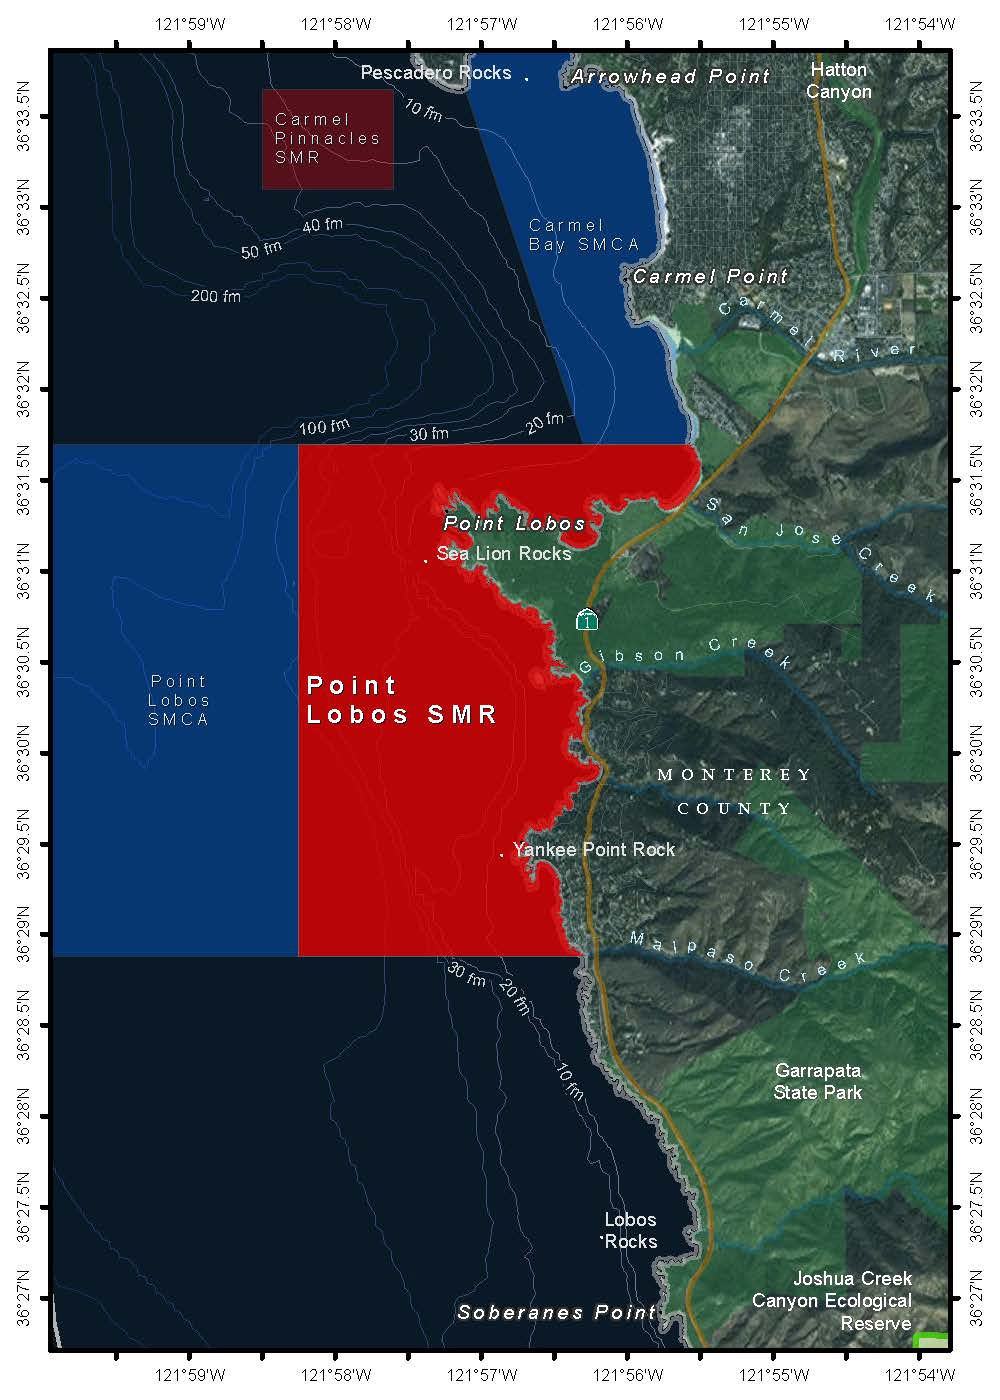 Boundaries of Point Lobos State Marine Reserve (California Fish and Wildlife Service)